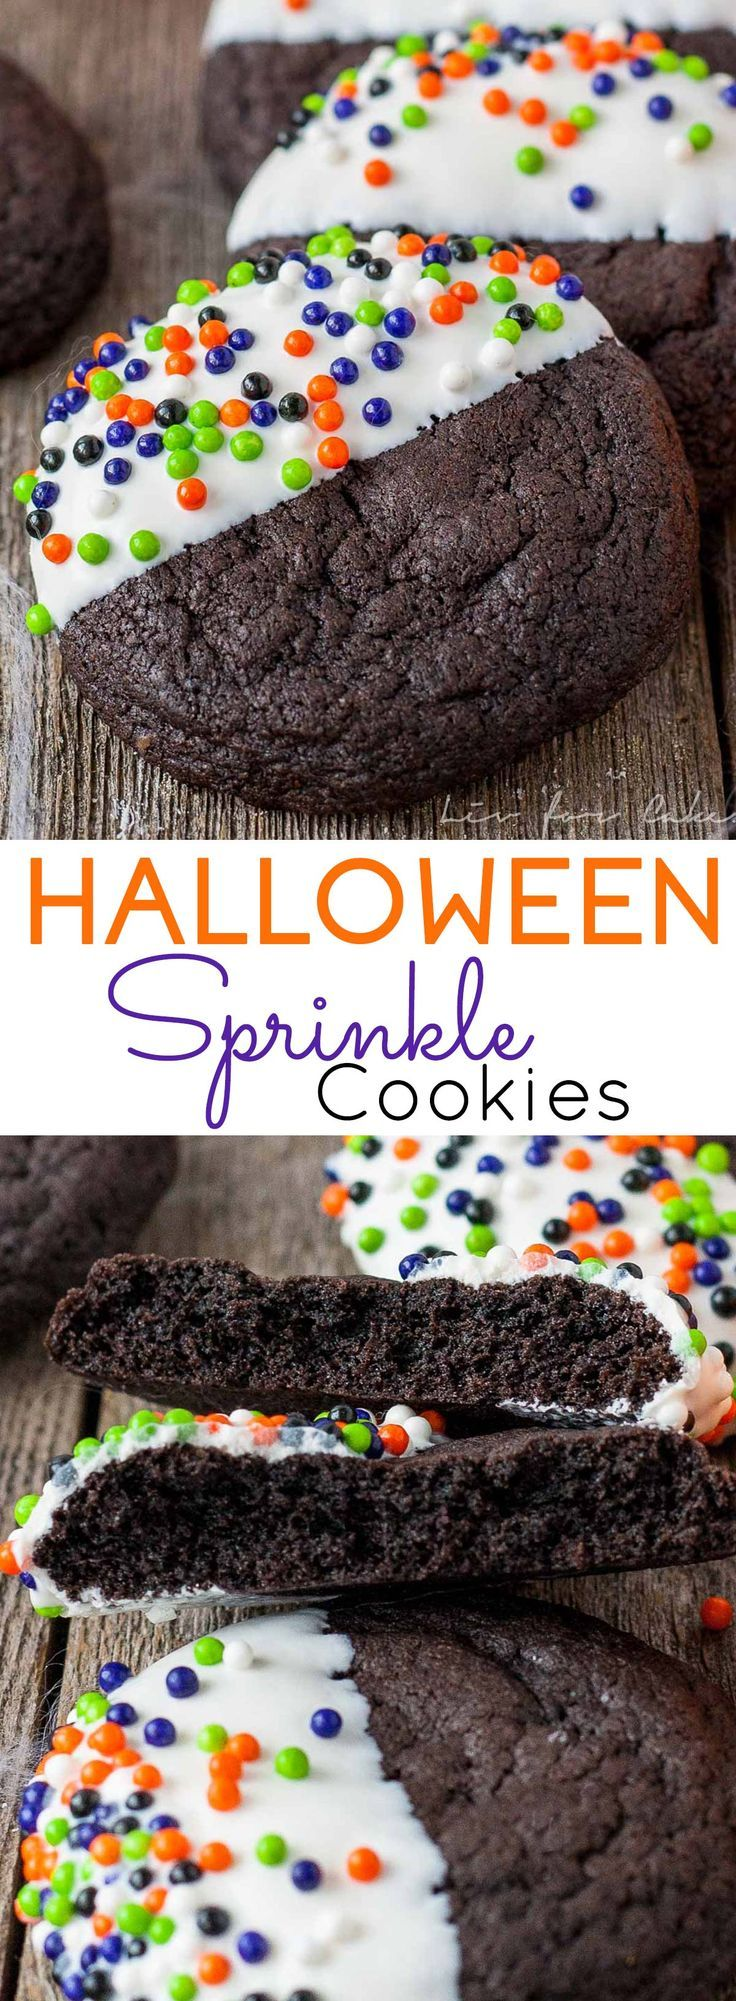 These easy Halloween Sprinkle Cookies are the perfect addition to your Halloween festivities! | livforcake.com #halloweencookies